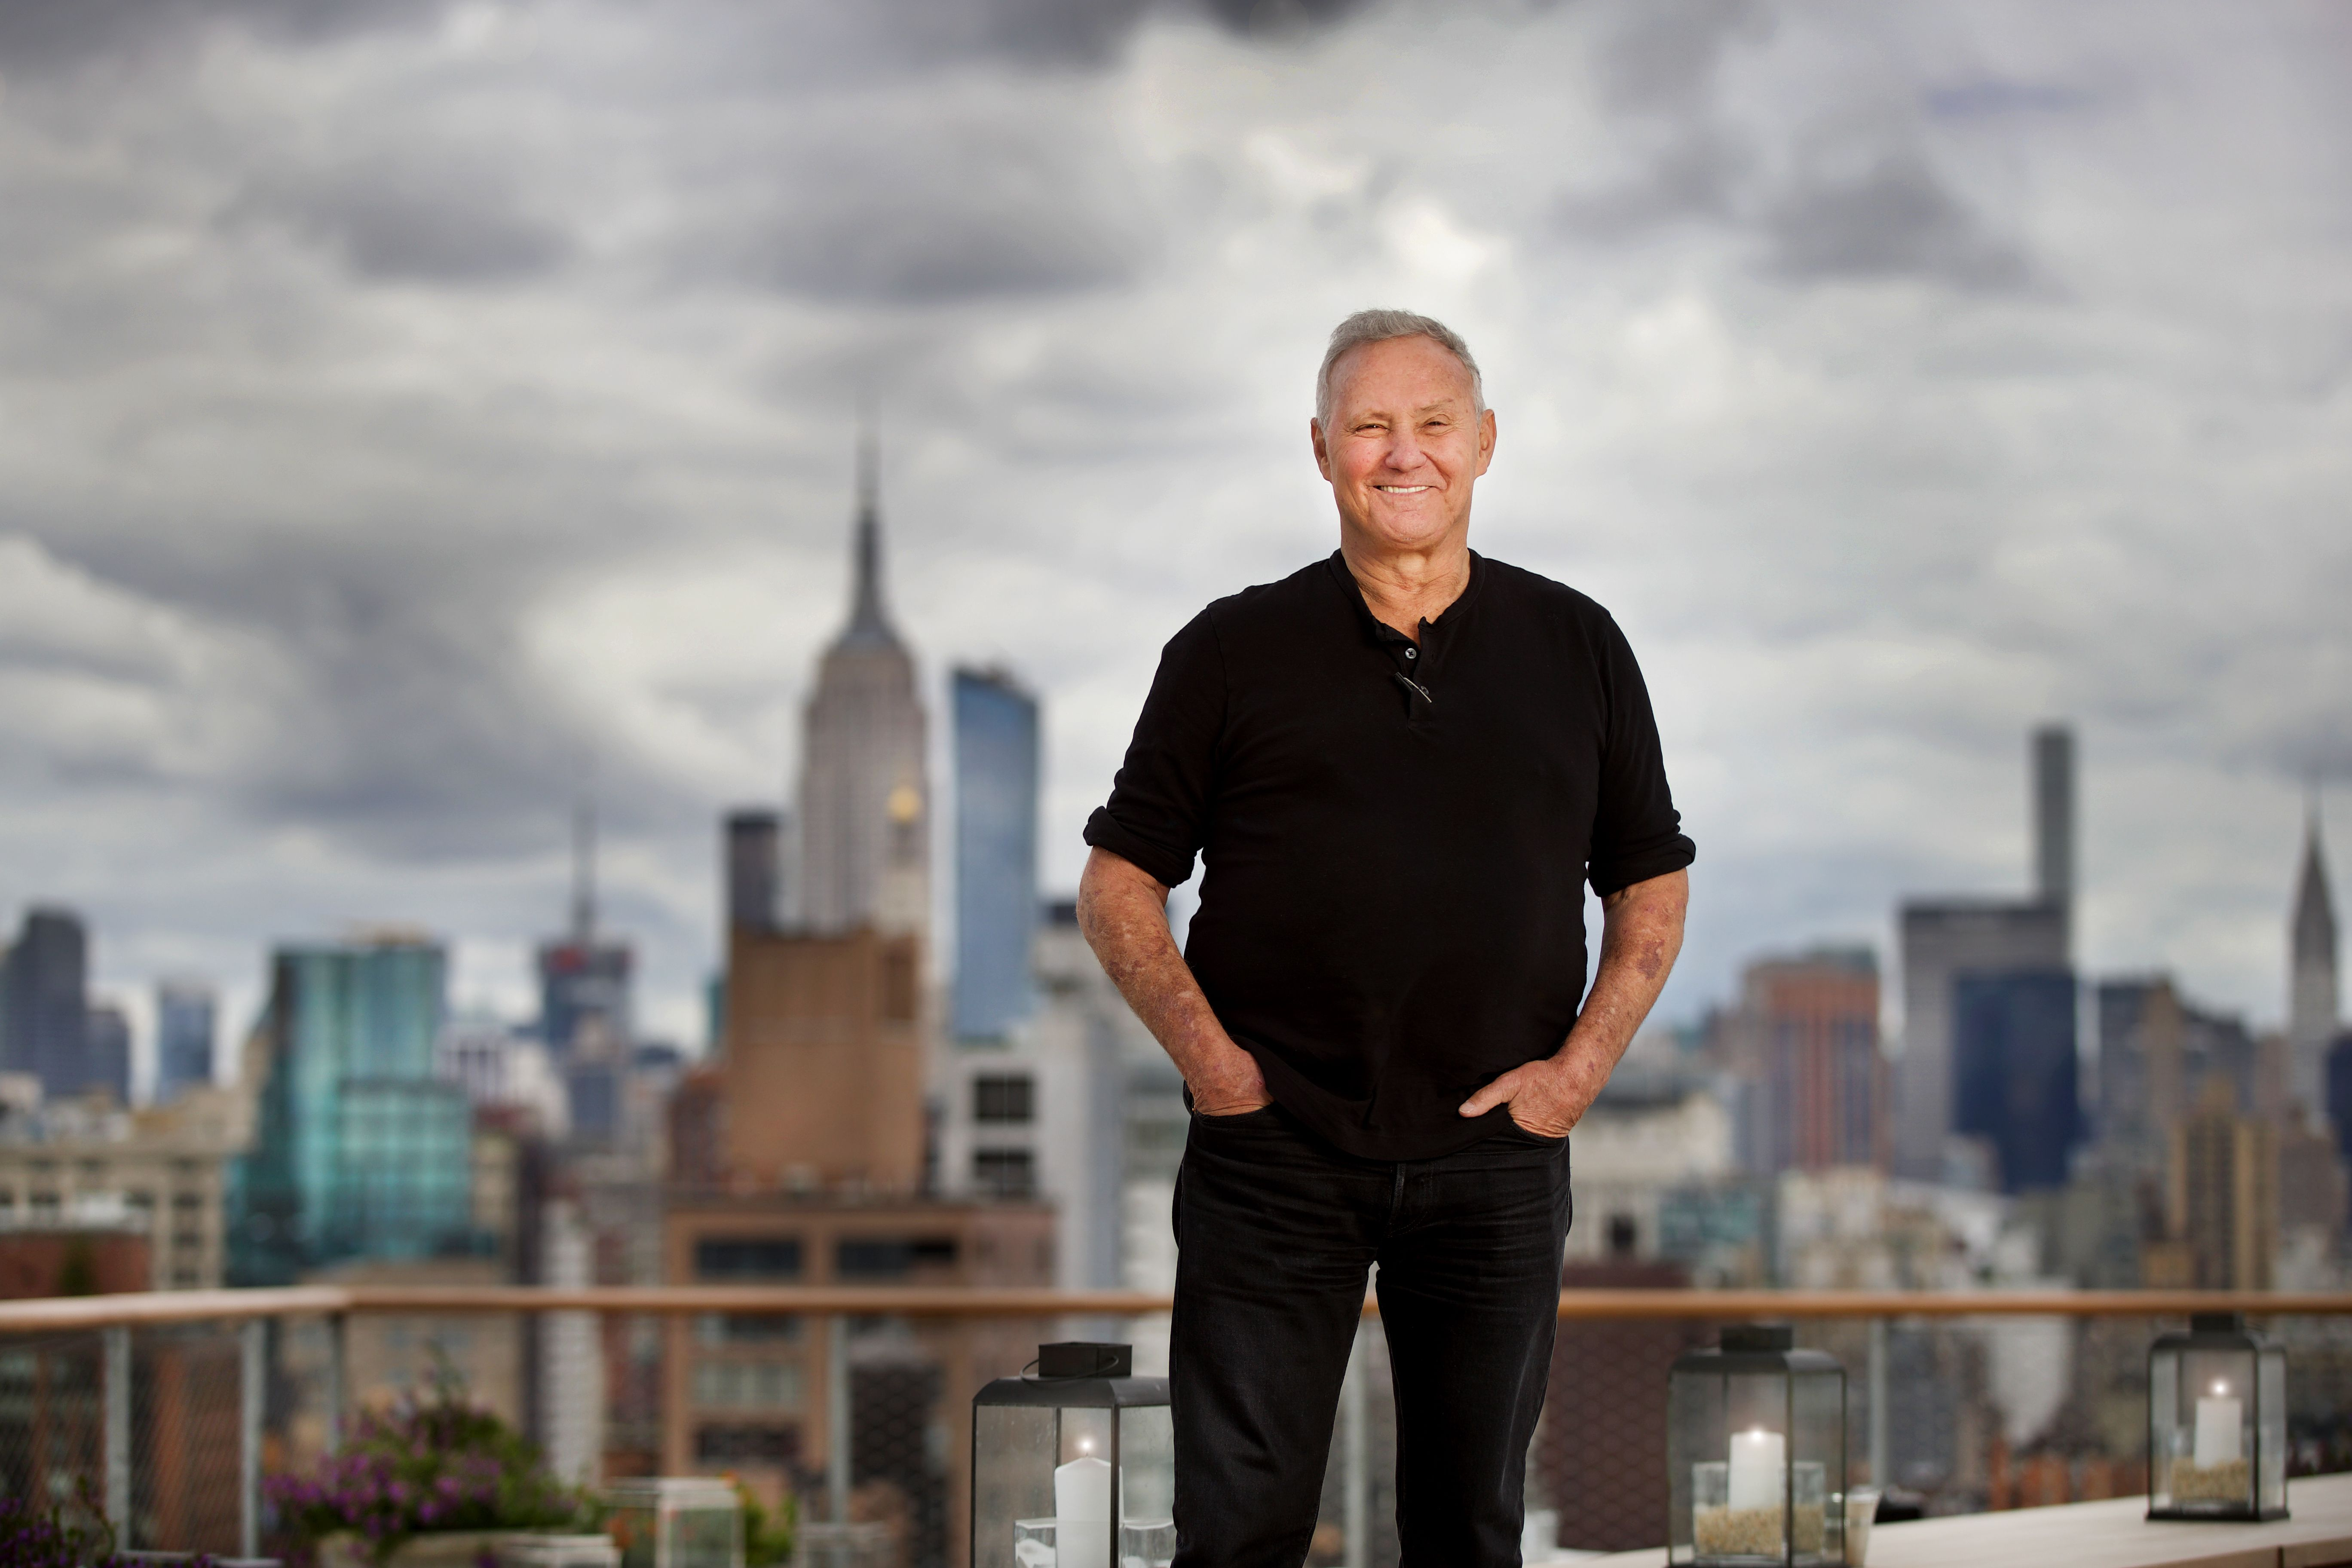 Ian SchragerIan Schrager, New York, USA - 07 Jun 2017His hedonistic days may be far behind him, but 70-year-old hotelier and former nightlife impresario Ian Schrager June 07, 2016 still remembers the formula for what is needed to create and maintain the intangible commodity of 'buzz', an alchemy that requires, first and foremost, human bodies, and that's exactly what was provided en masse last night at the opening of his newest venture, Public Hotels, at 215 Chrystie Street.